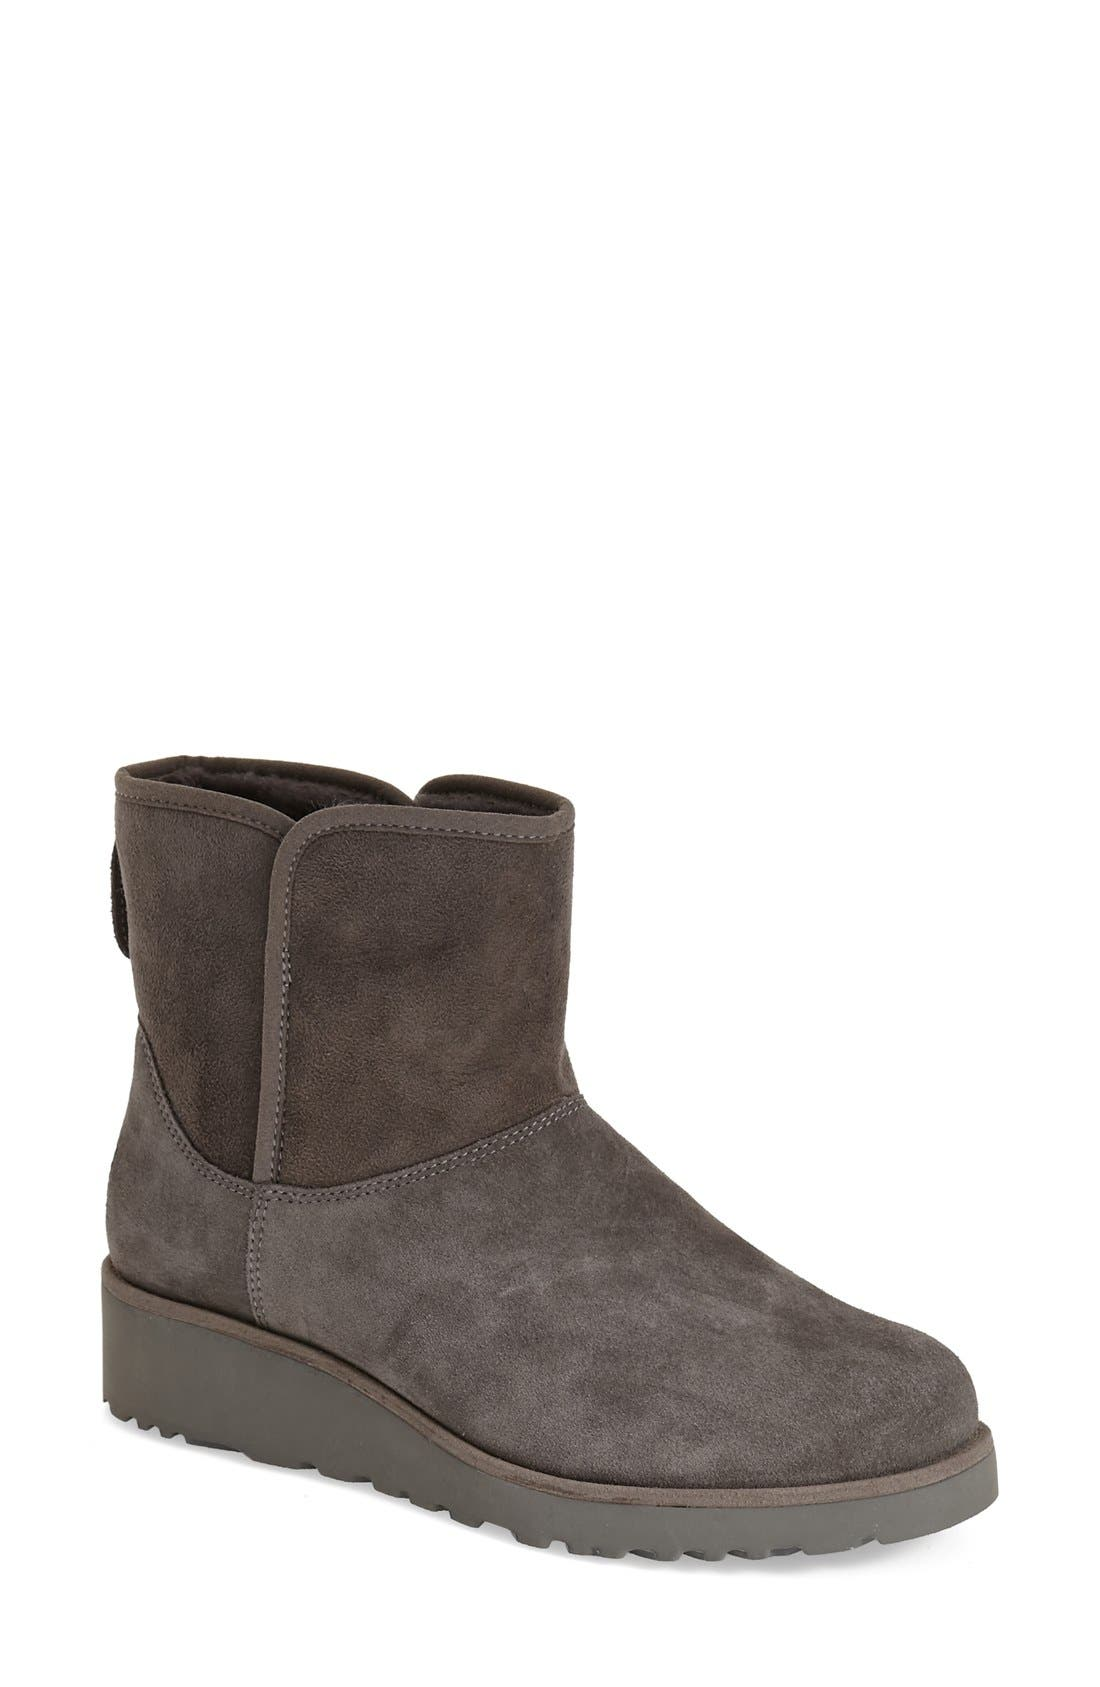 ugg kristin slim water resistant mini boot